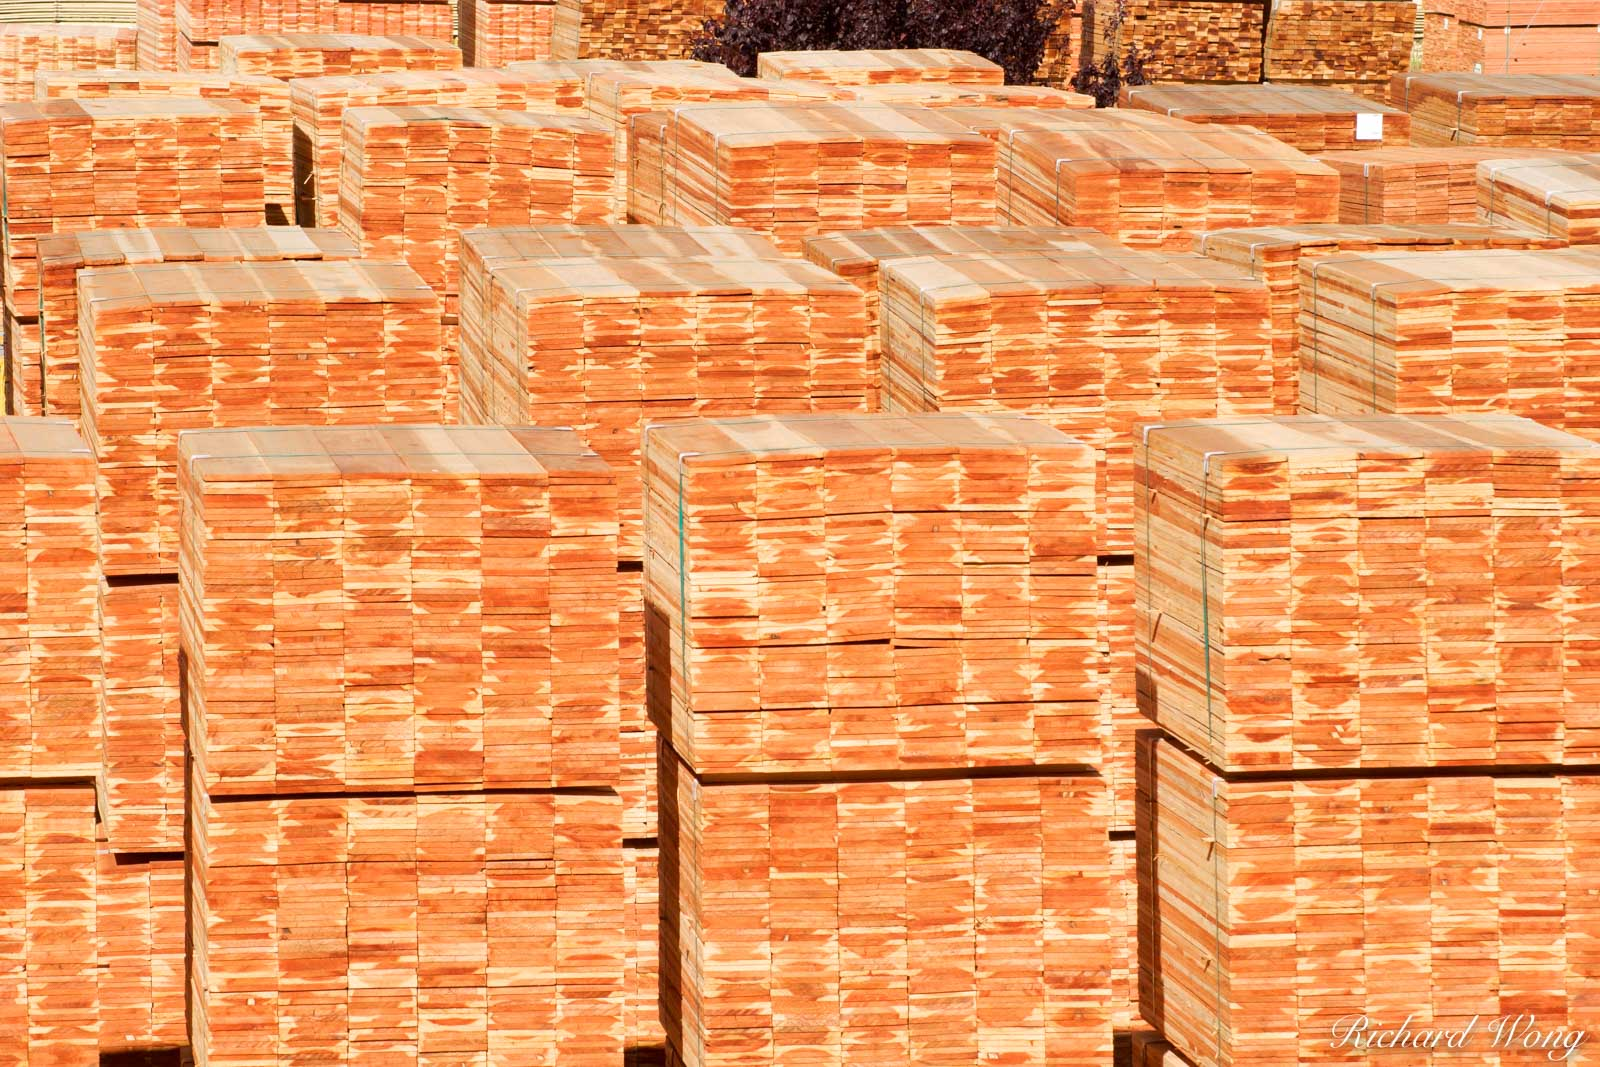 Stacks of Timber, Pacific Lumber Company Mill (PALCO), Scotia, California, photo, photo